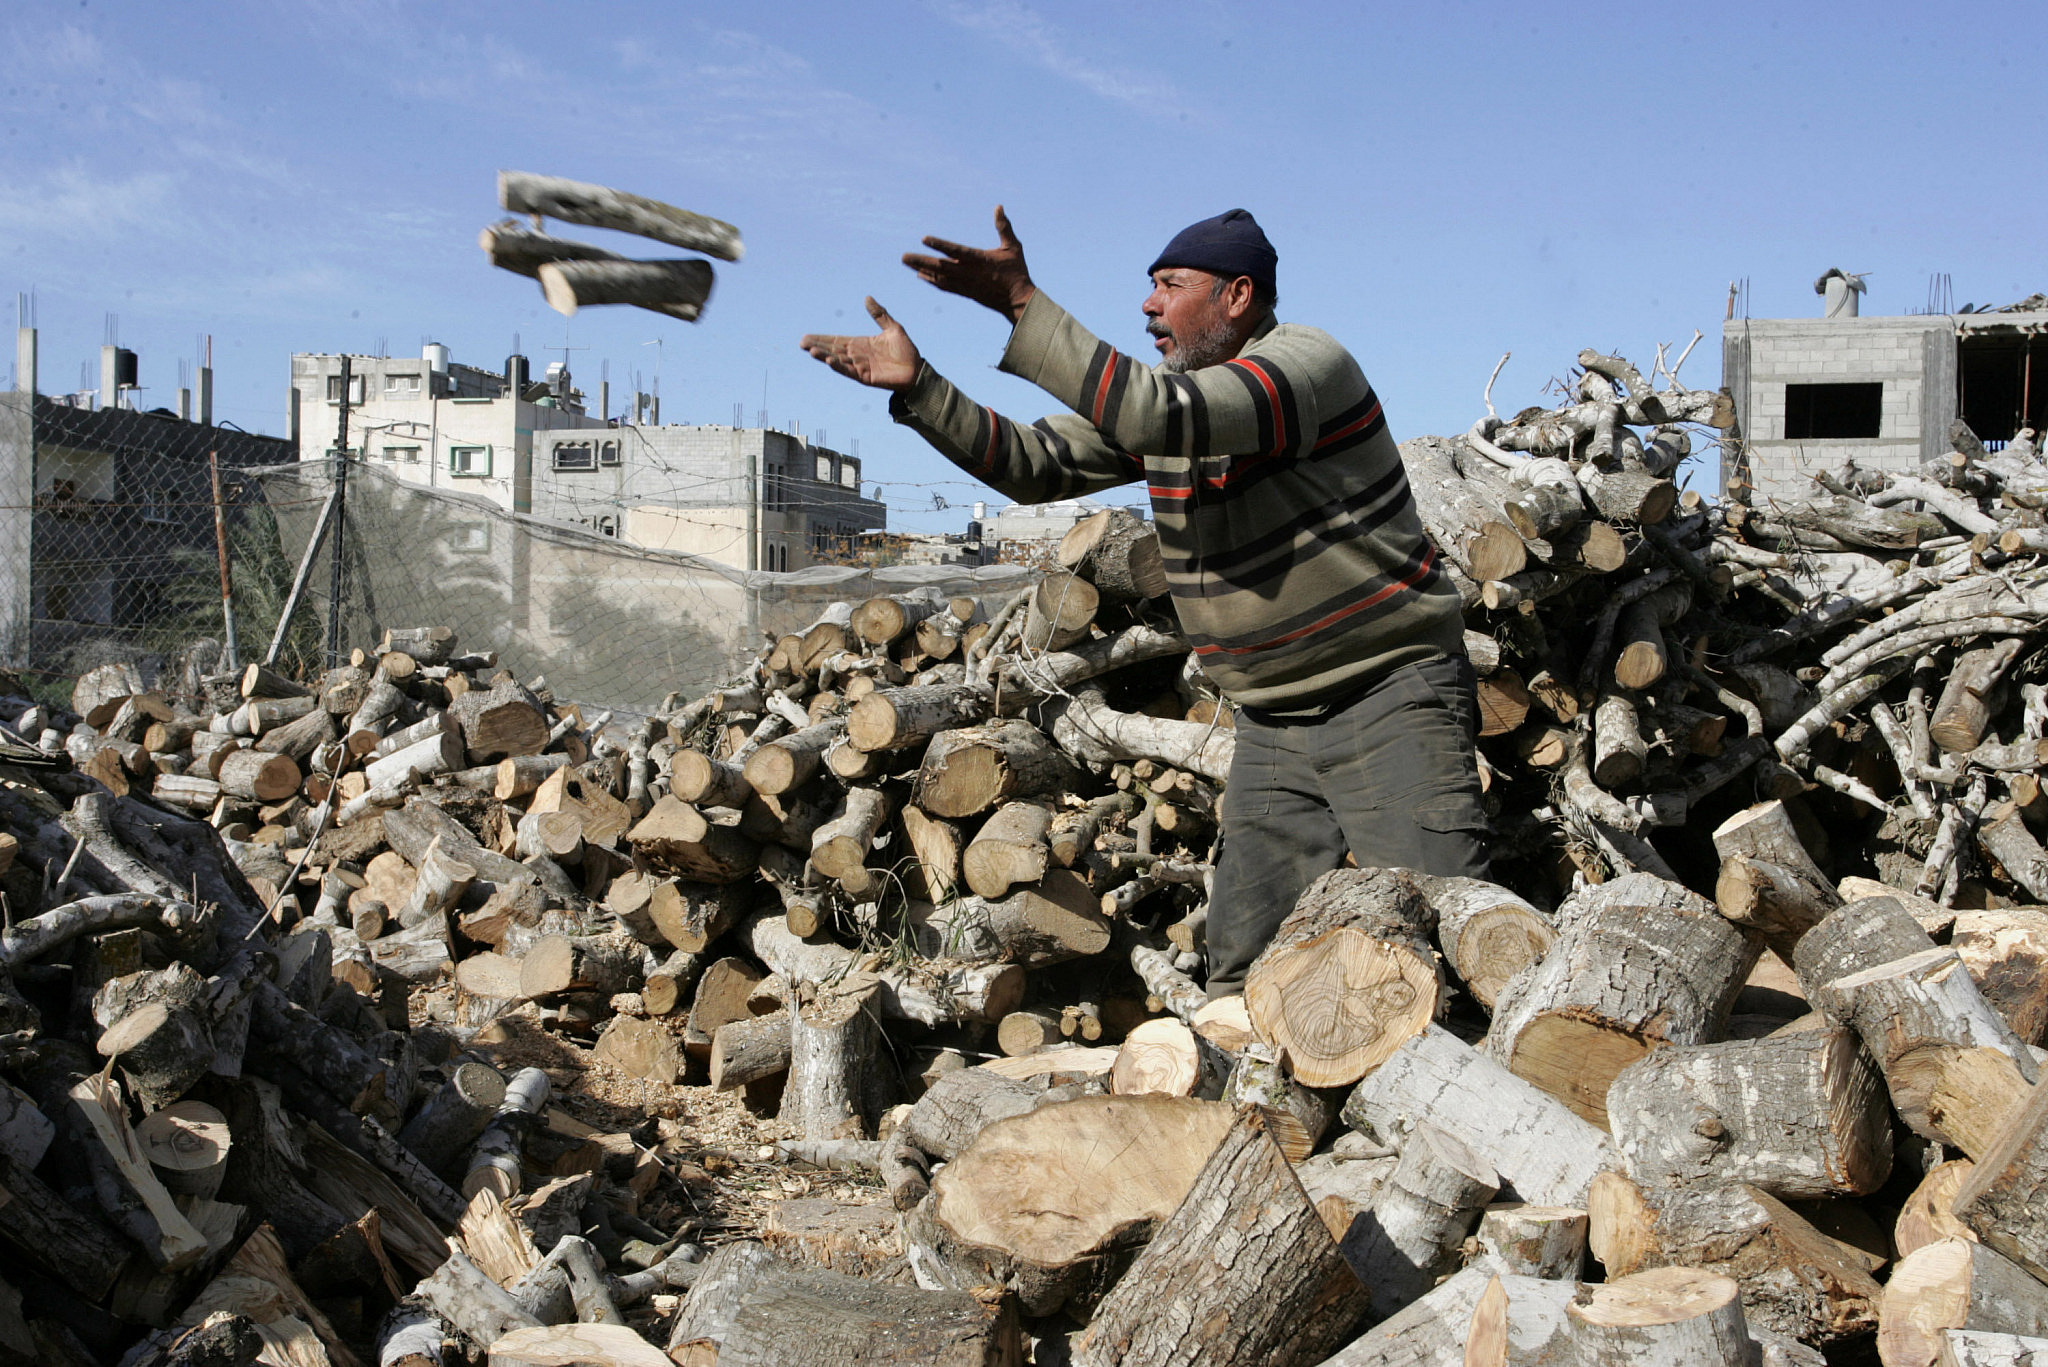 Palestinian labourers carry firewood in a yard in Khan Younis, southern Gaza Strip on January 11, 2012. (Abed Rahim Khatib/Flash 90)